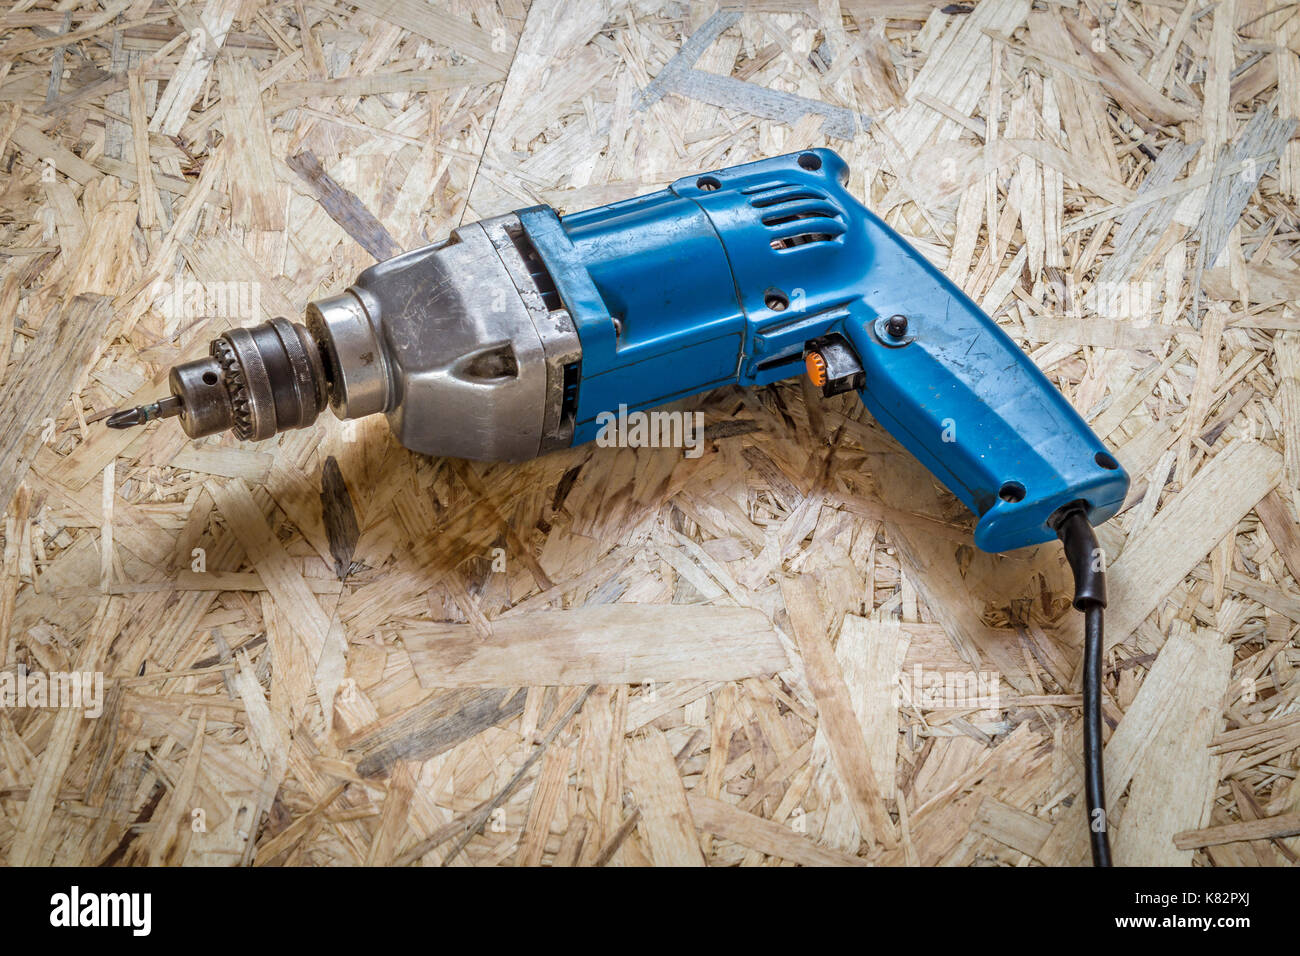 Blue old drill-screwdriver close-up on a wooden surface. Stock Photo